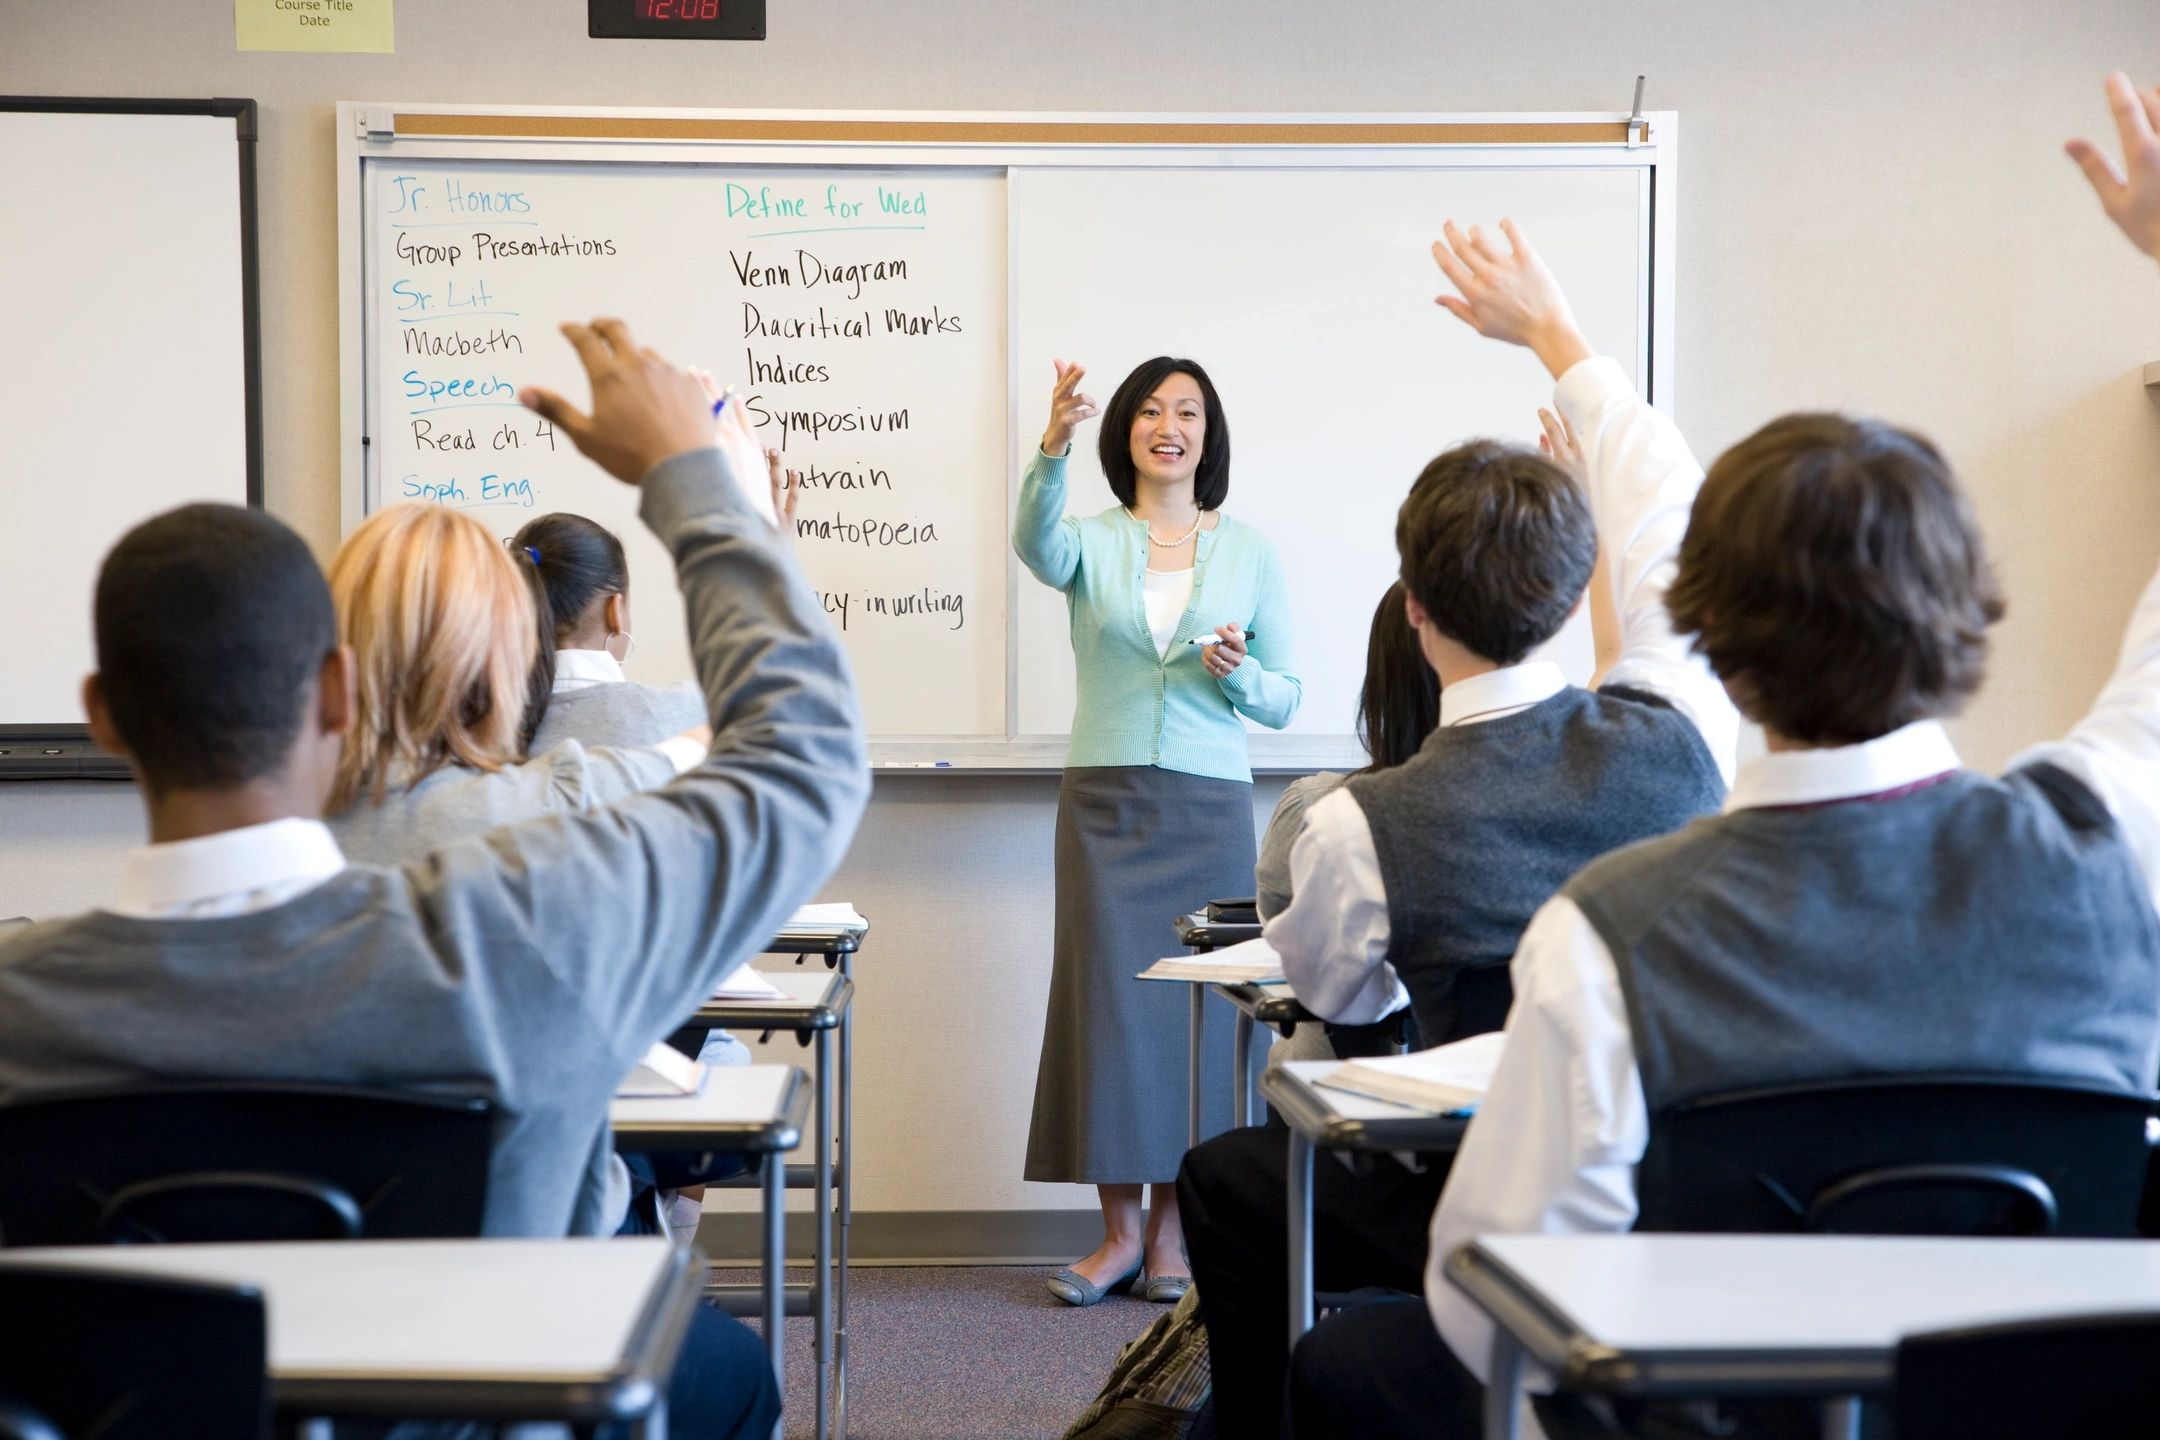 UK Boarding School students raising their hands in class